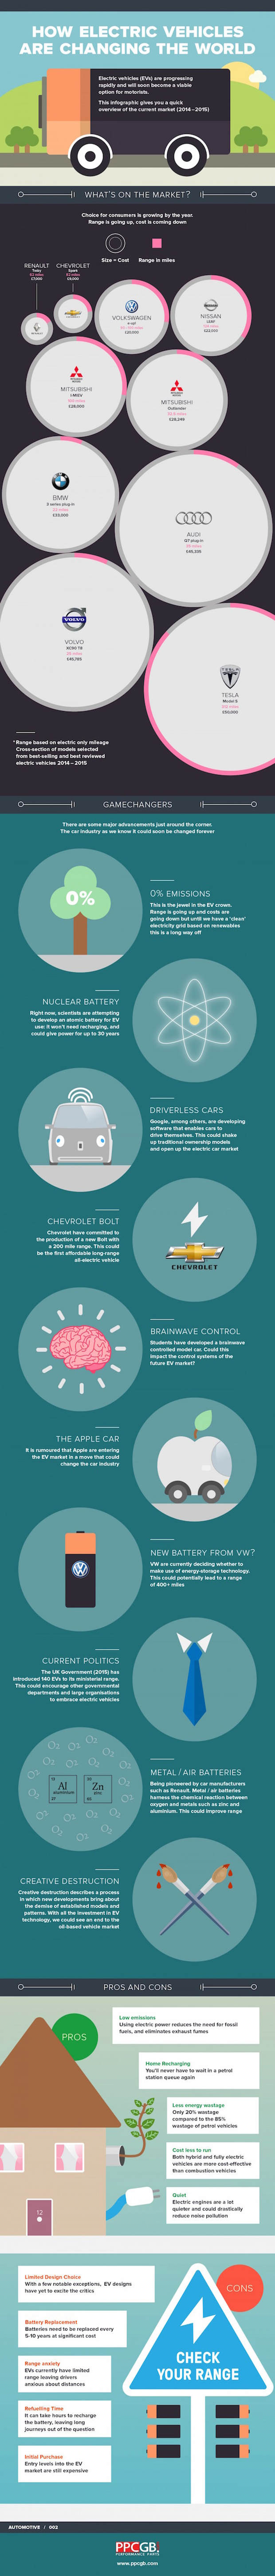 How electric cars are changing our world - infographic